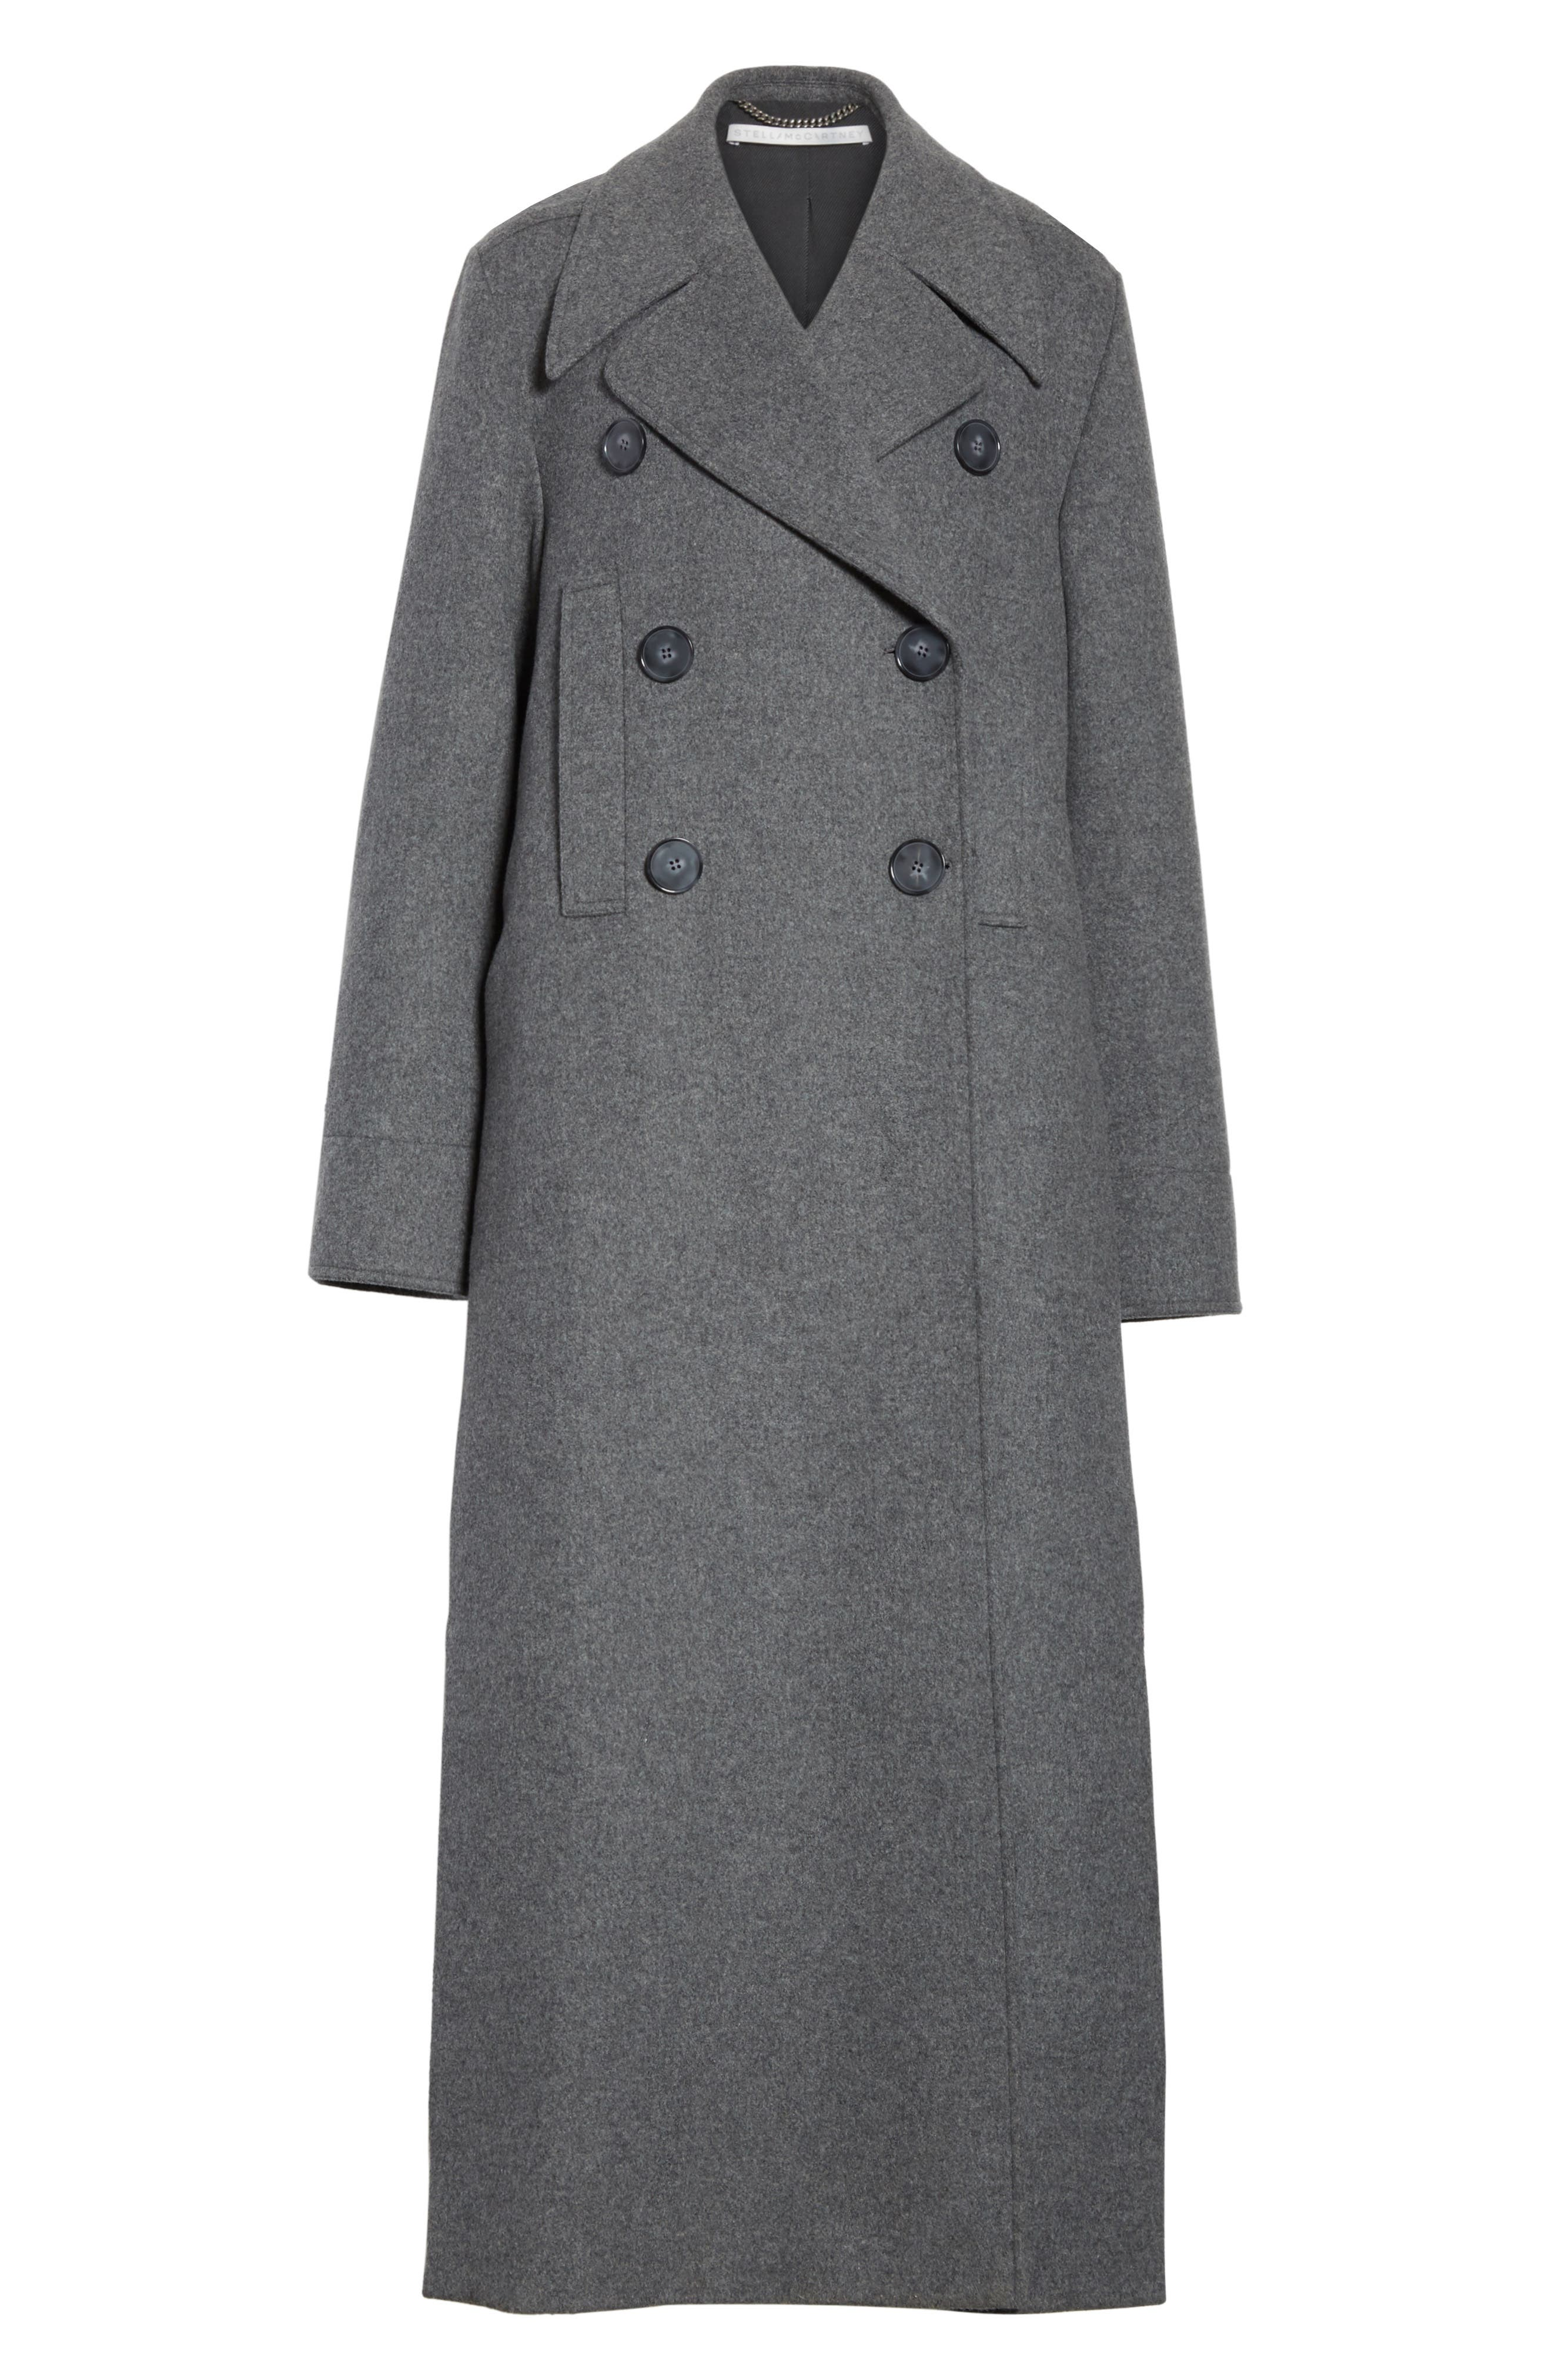 Edwina Long Double Breasted Wool Blend Coat,                             Alternate thumbnail 7, color,                             Graphite